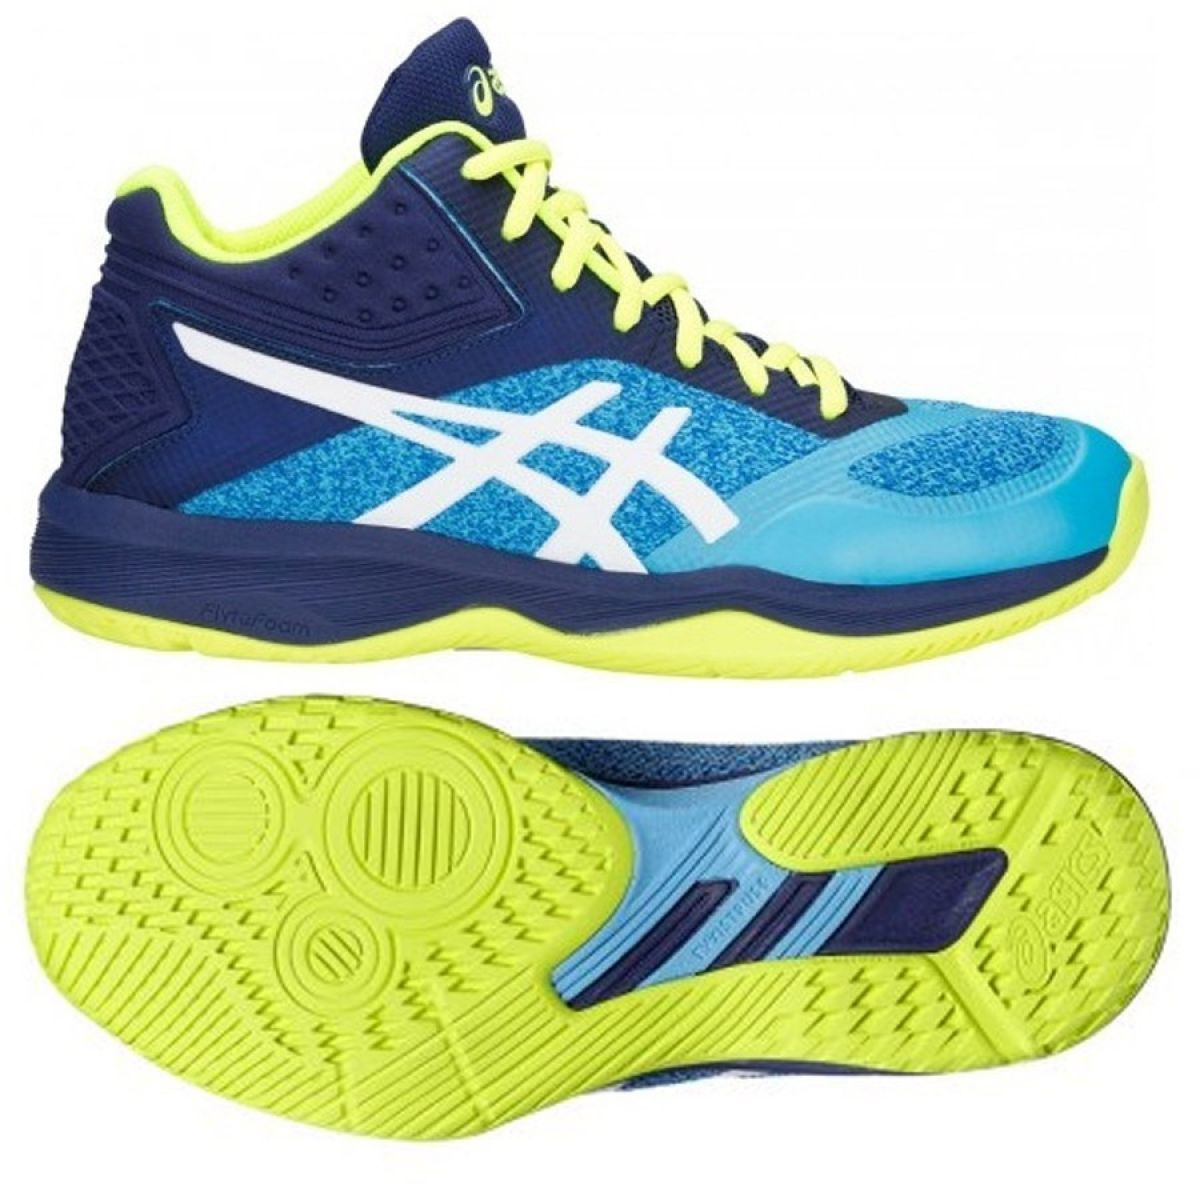 Details about Volleyball shoes Asics Netburber Ballistic M 1052A001 400